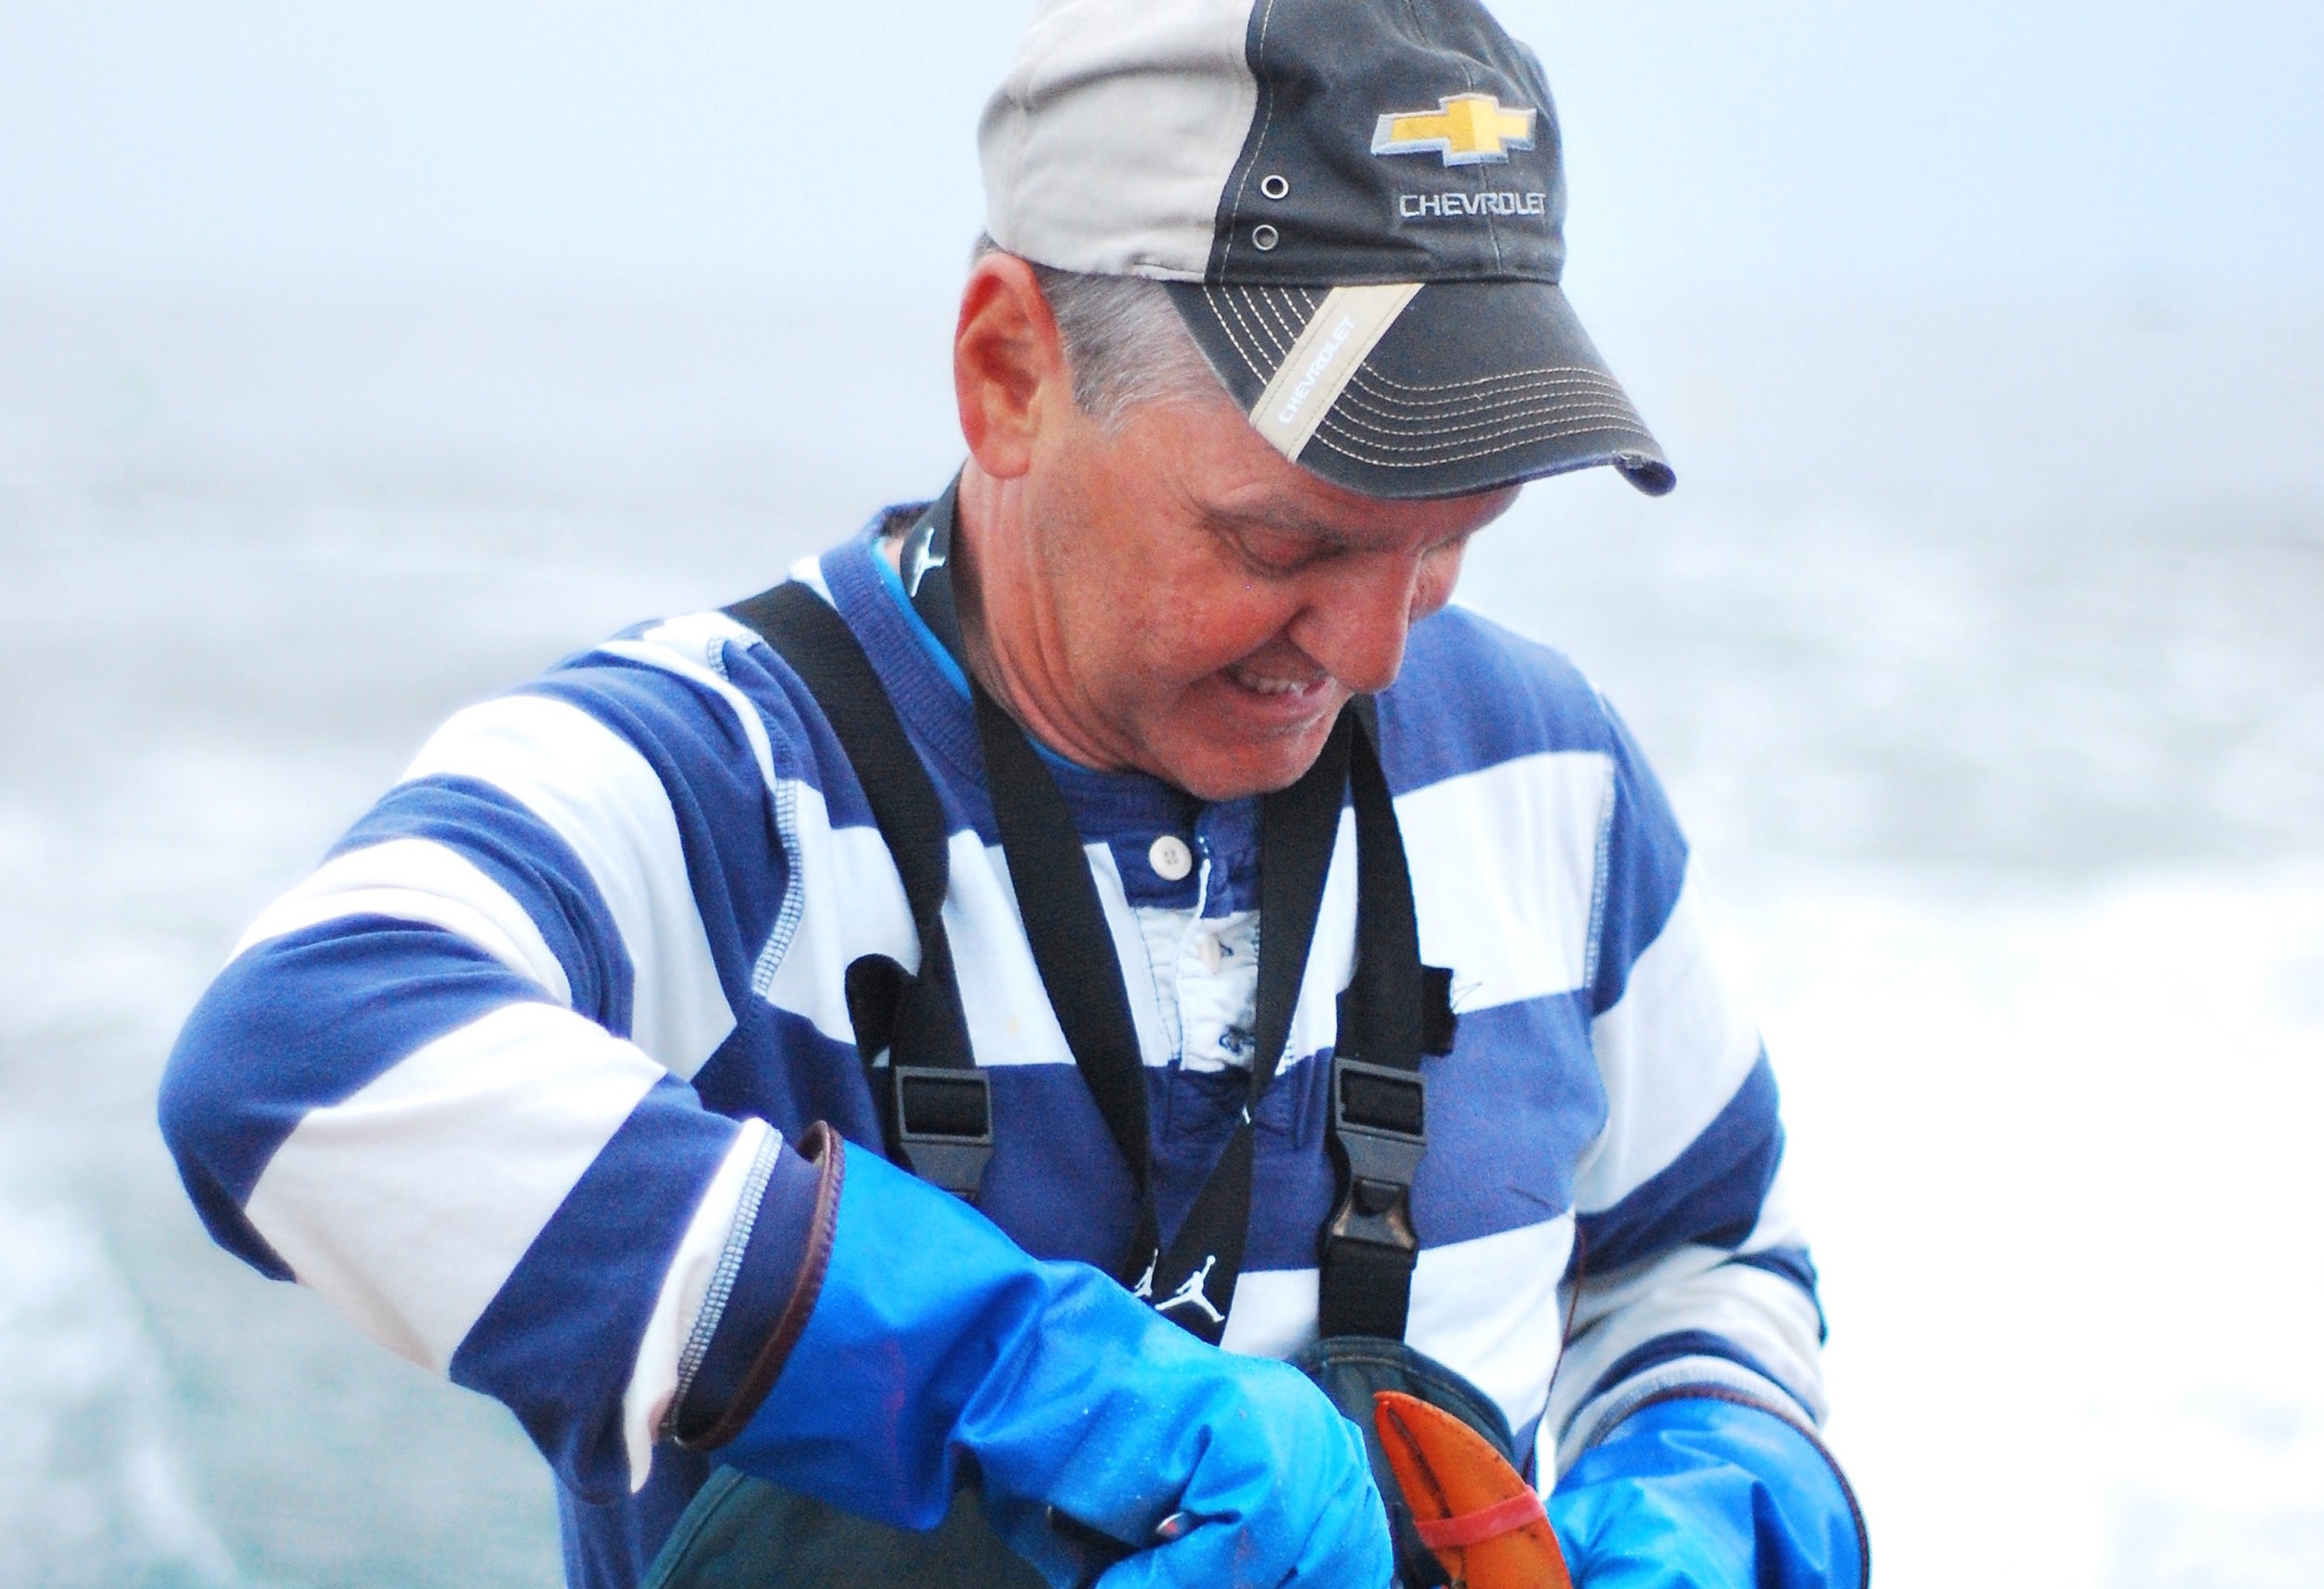 Are you a fisherman? - We understand that the ocean is your livelihood. We offer support through this time of transition and provide training in key skills, to help you become the custodians of your waters.